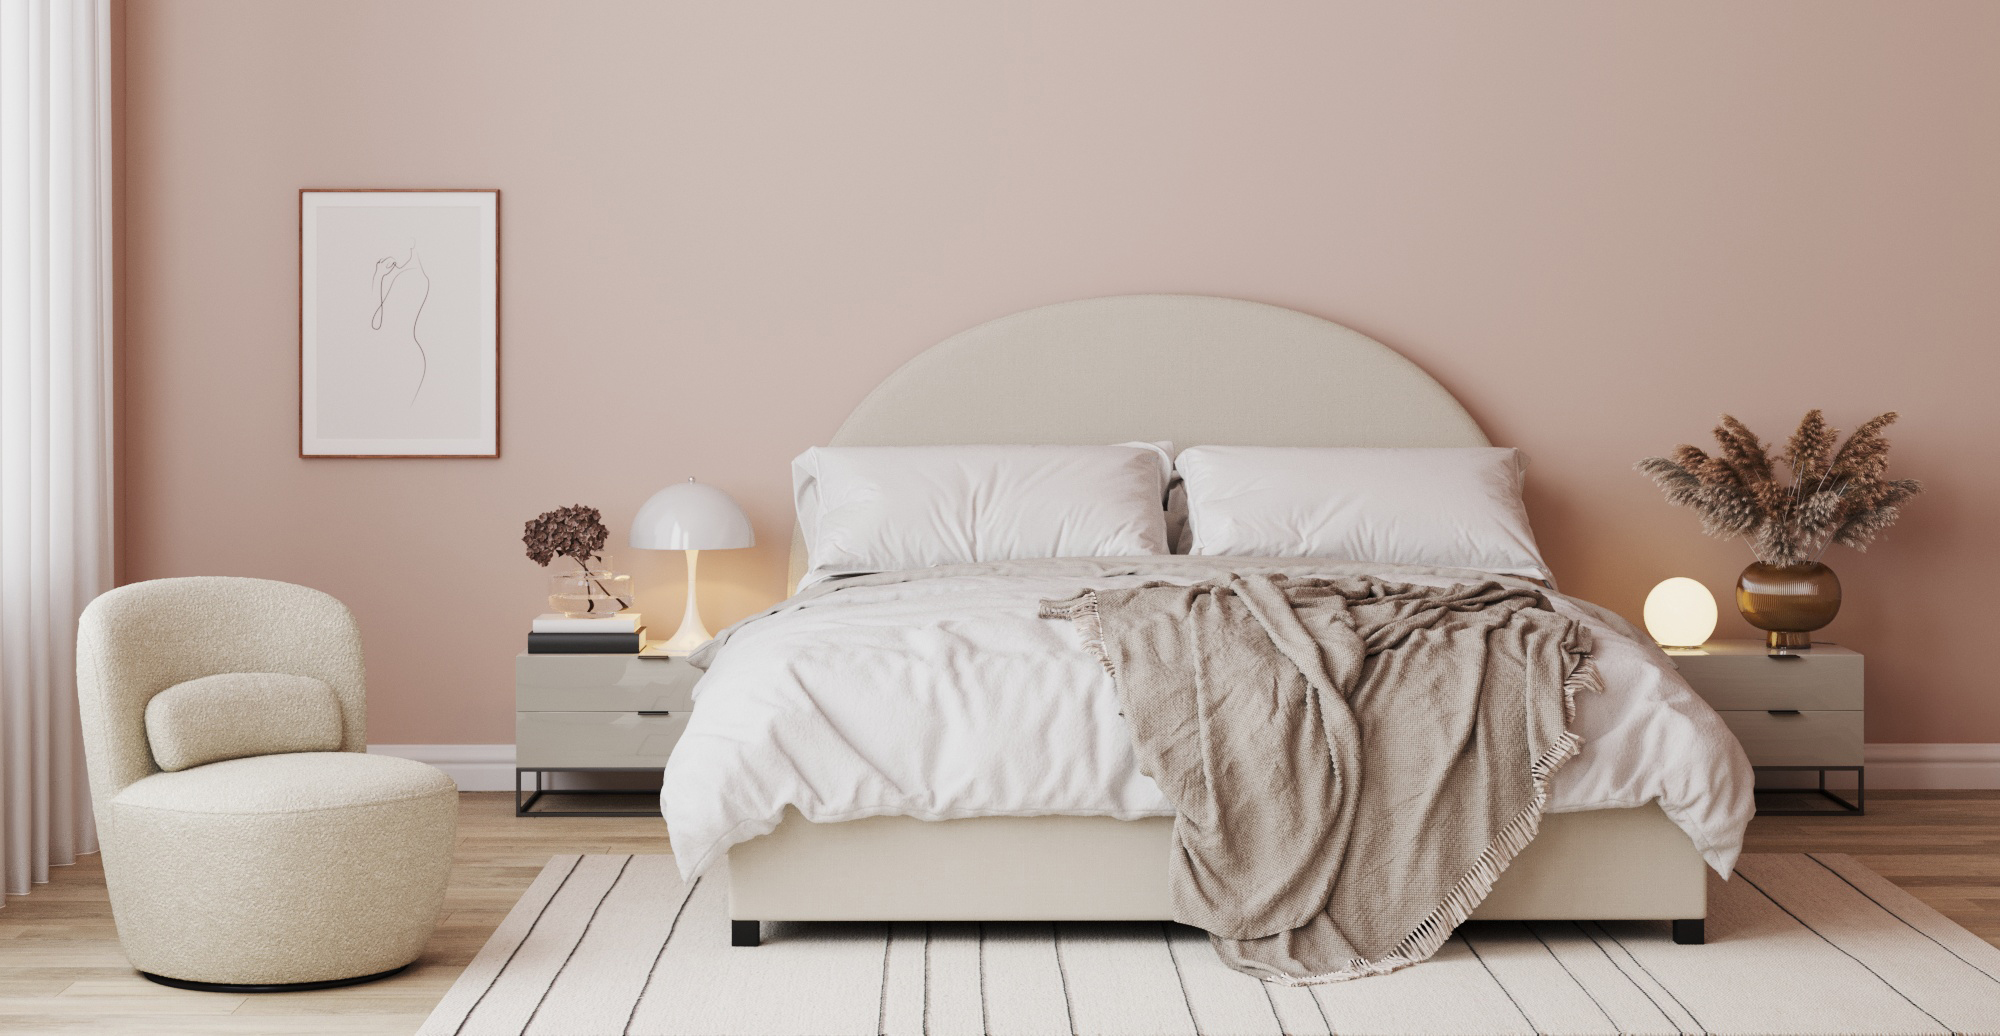 Brosa Arch Queen Gaslift Bed Frame styled in new Art Deco bedroom